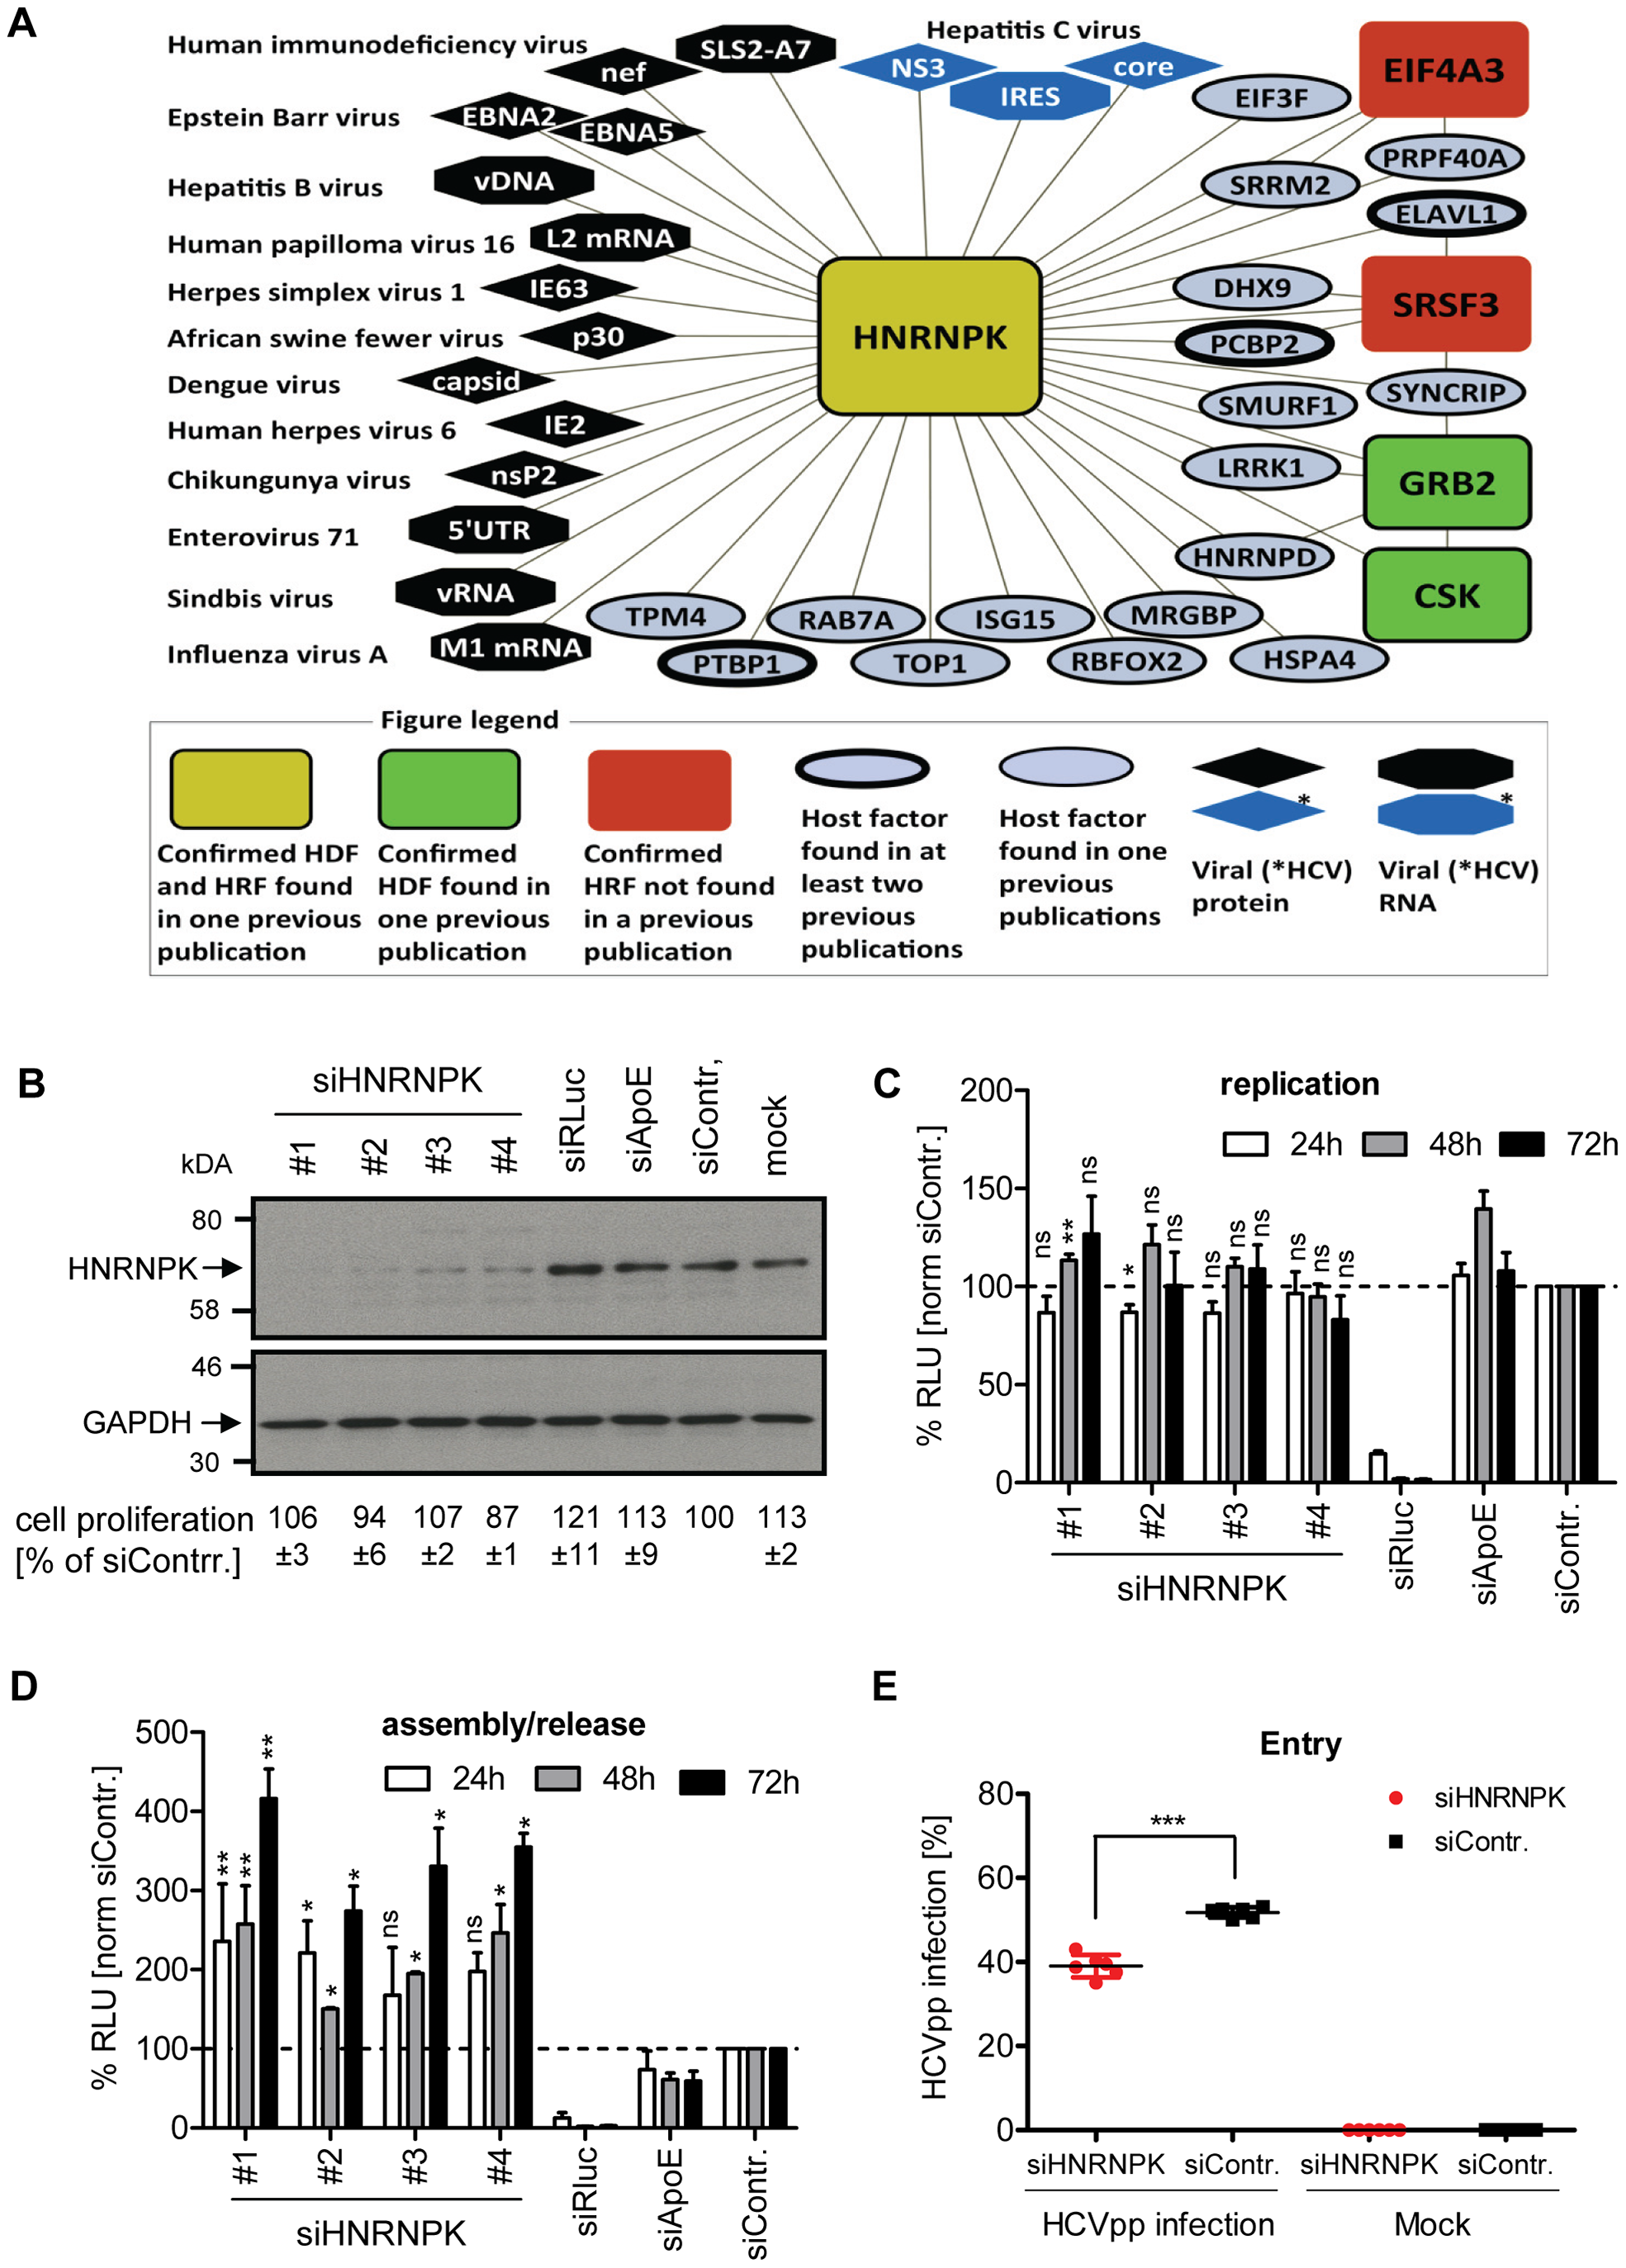 HNRNPK restricts HCV assembly/release but does not affect viral RNA replication.